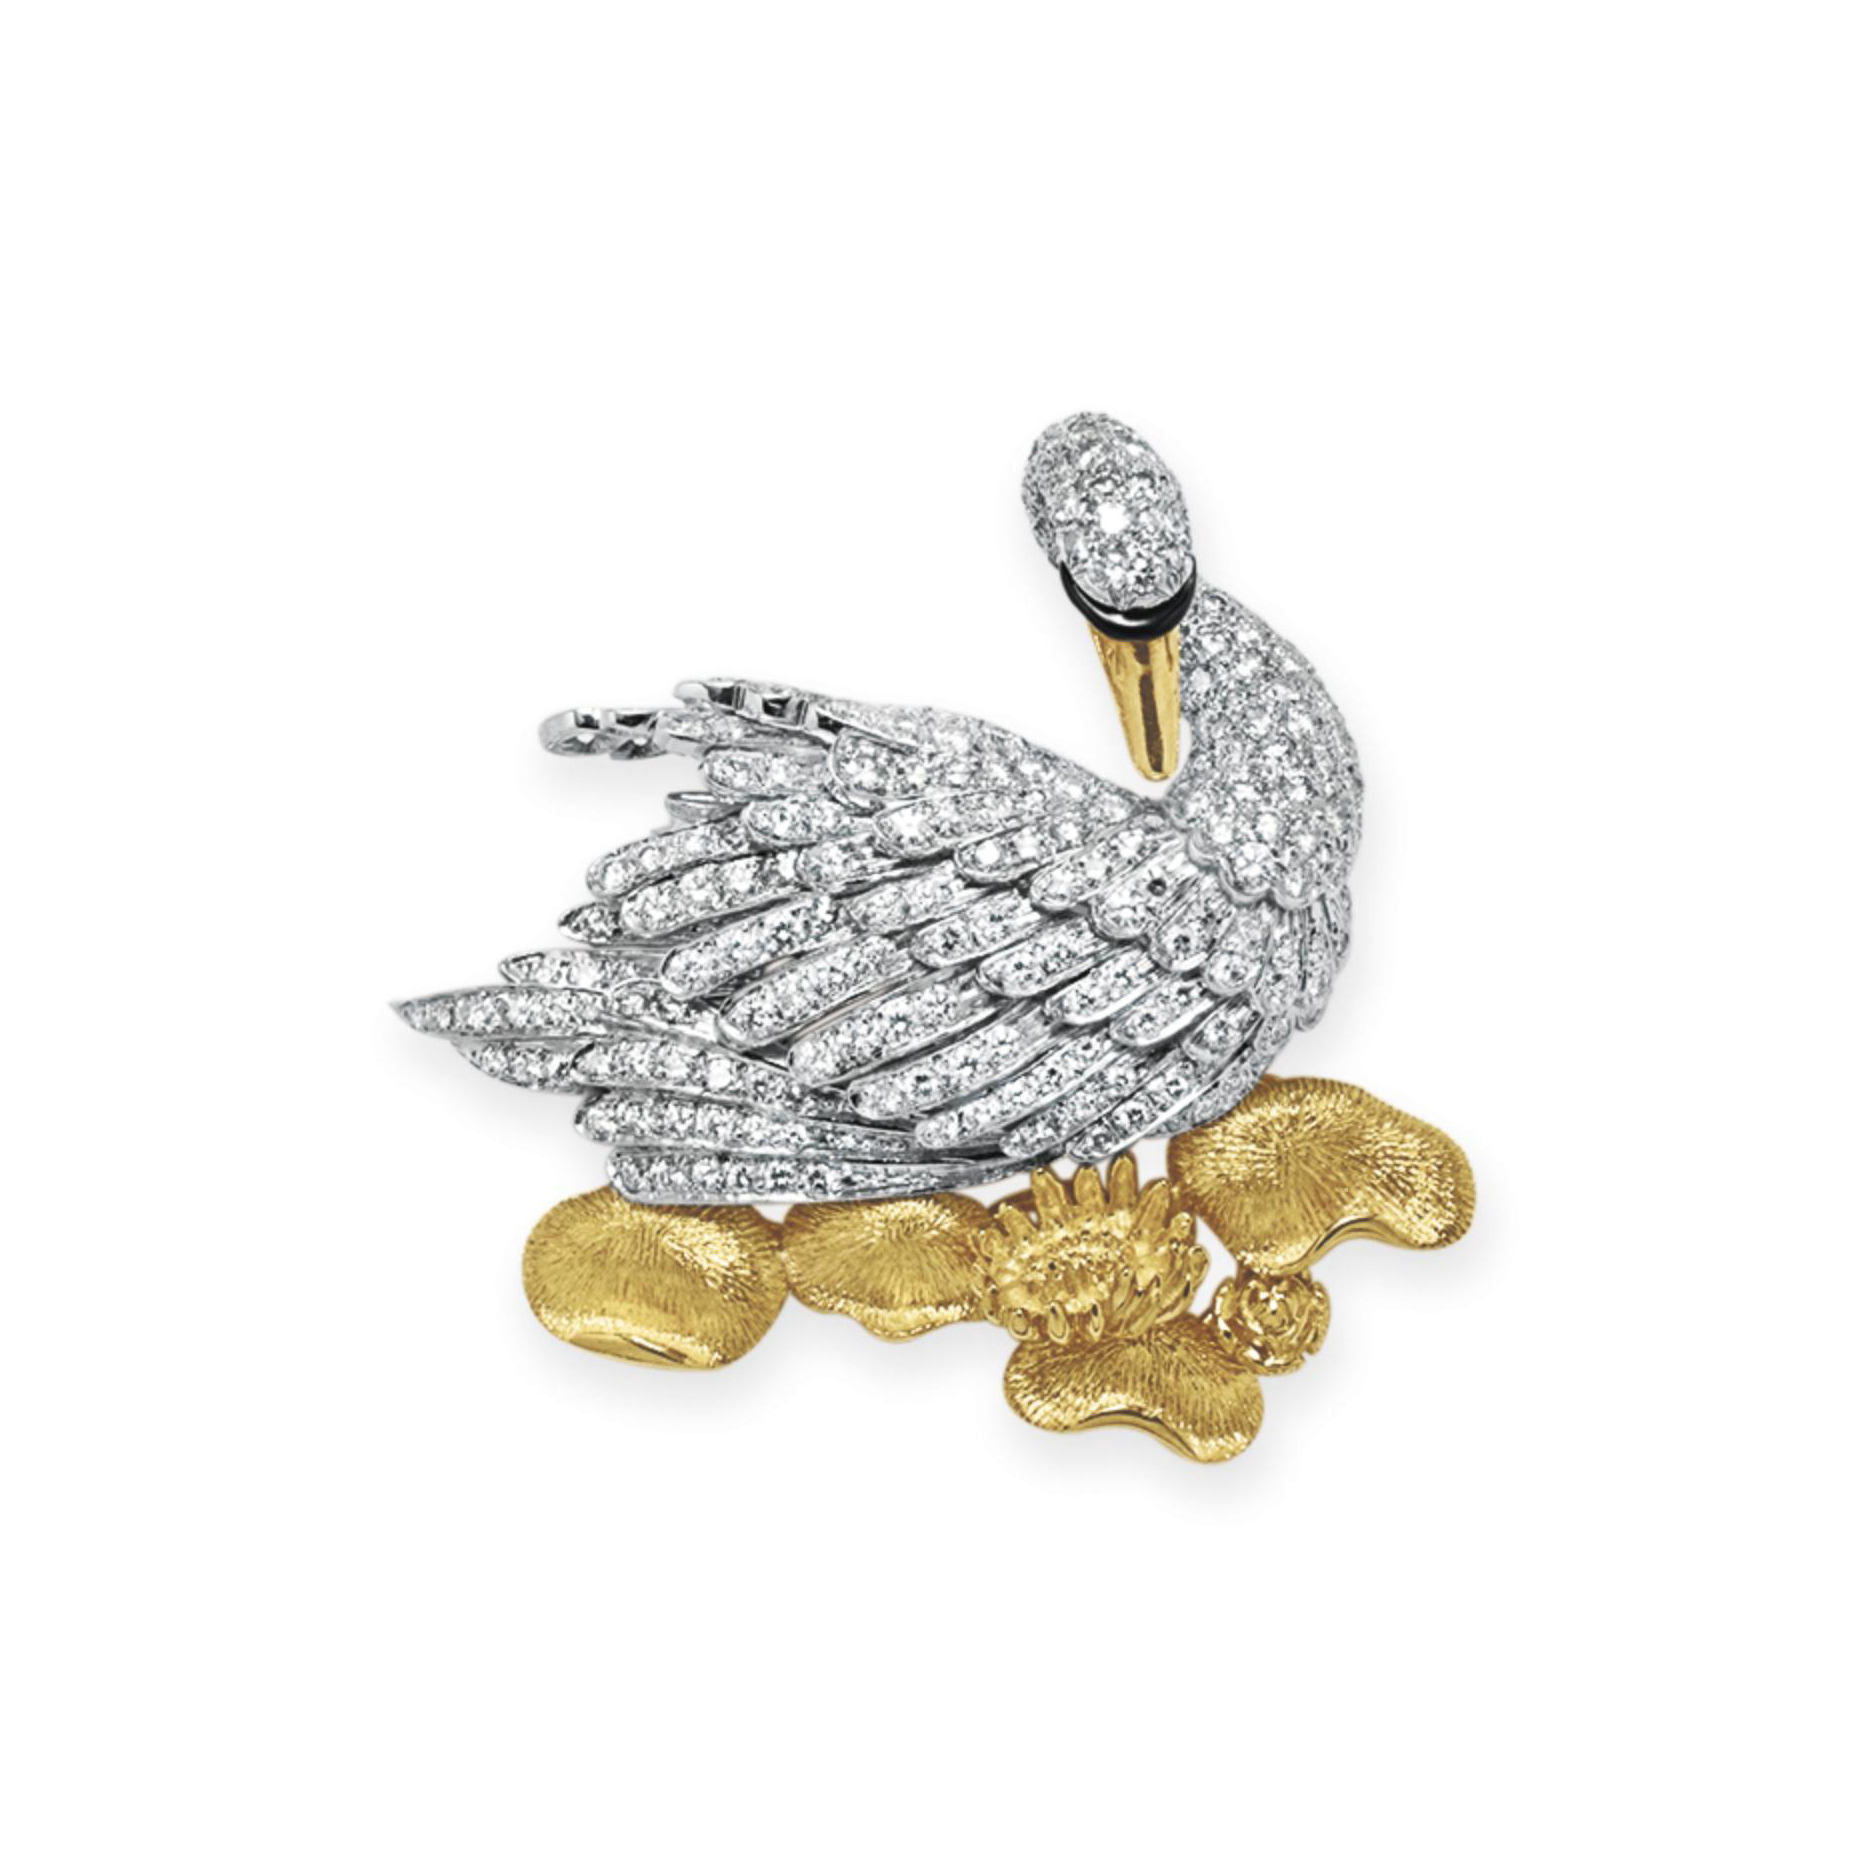 A DIAMOND AND GOLD BROOCH, BY MCTEIGUE & CO.